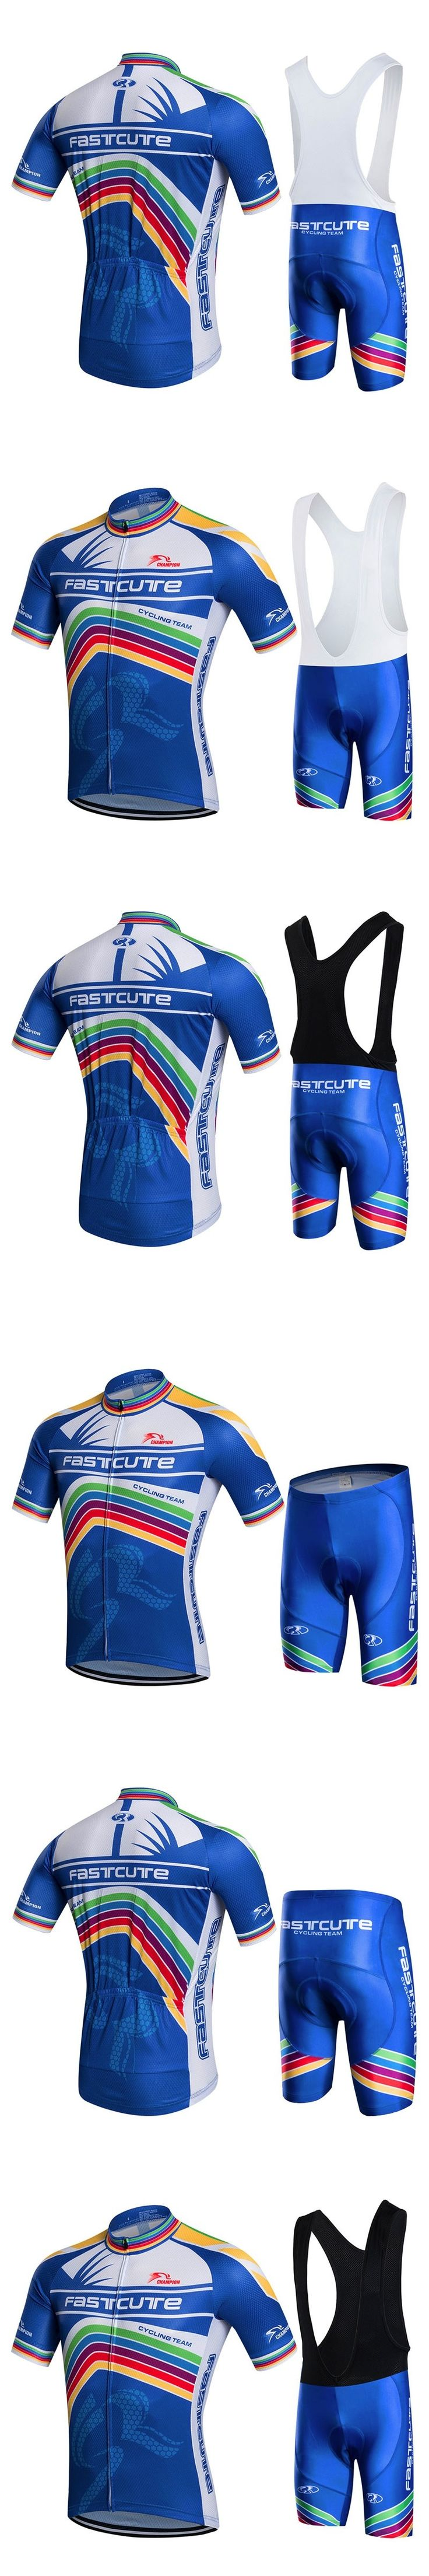 FASTCUTE Cycling Jersey Multicolor Bicycle Bike Short Sleeve Sportswear Cycling Clothing maillot Cycling Jerseys short men